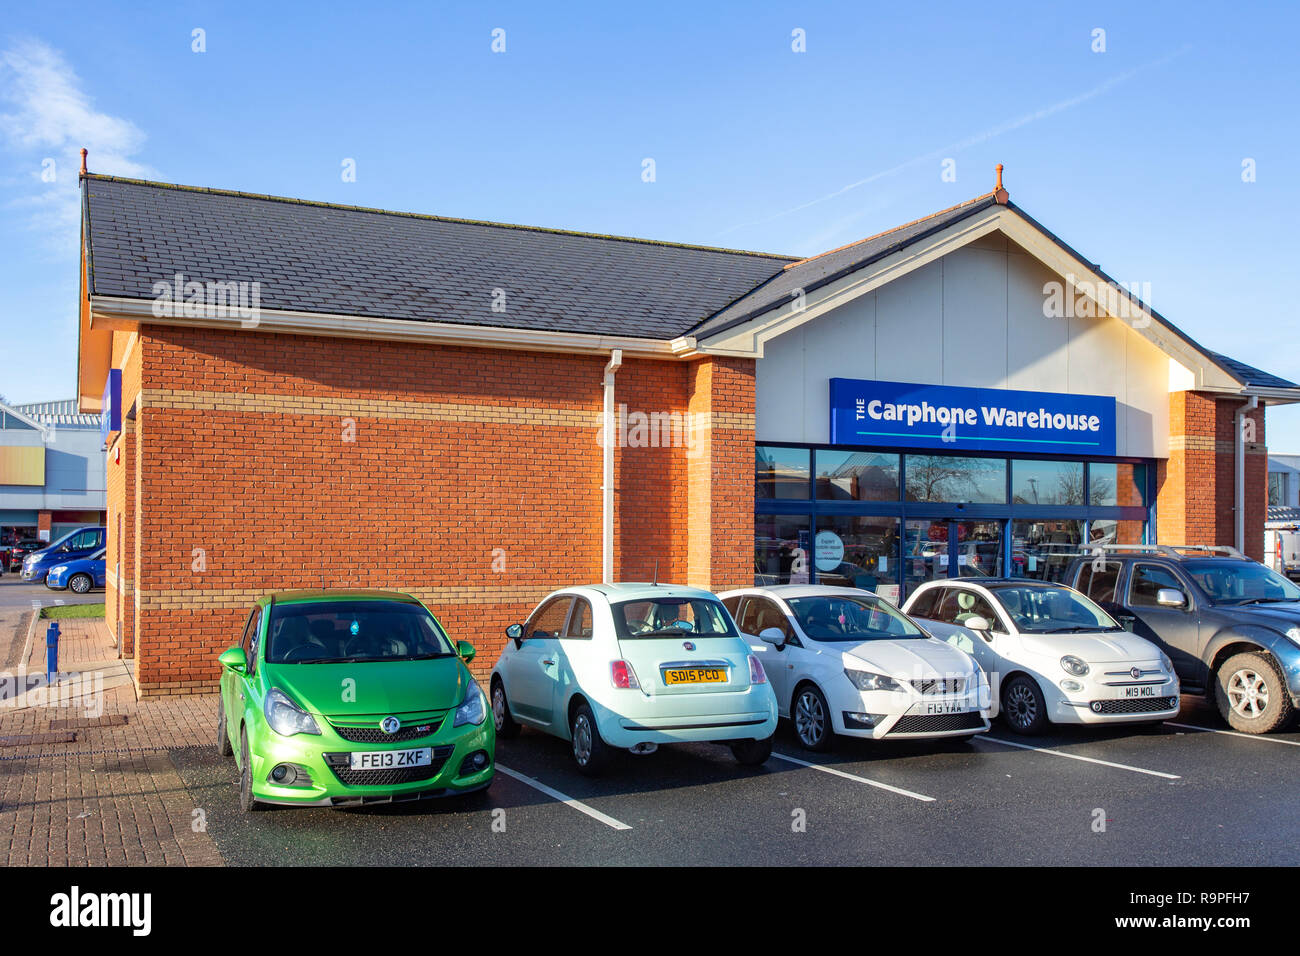 The Carphone Warehouse at Grand Junction Retail Park in Crewe Cheshire UK - Stock Image